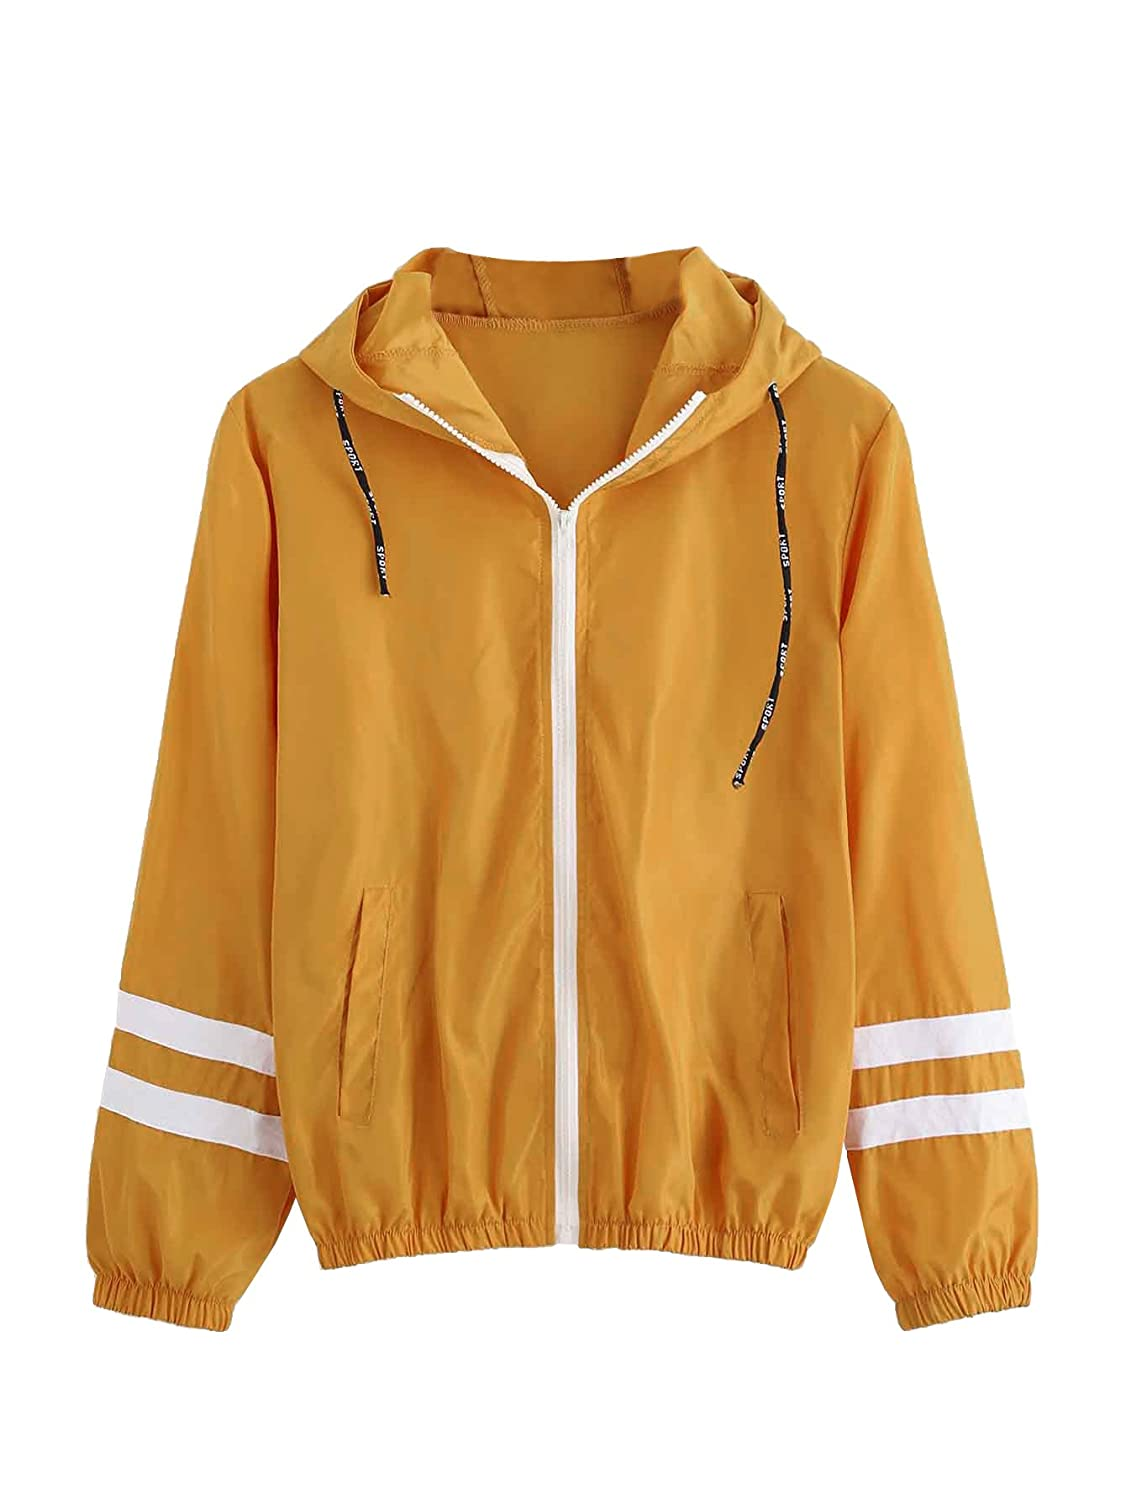 Mustard SweatyRocks Women's colorful Splash Printing Zip Up Windbreaker Jacket with Hood